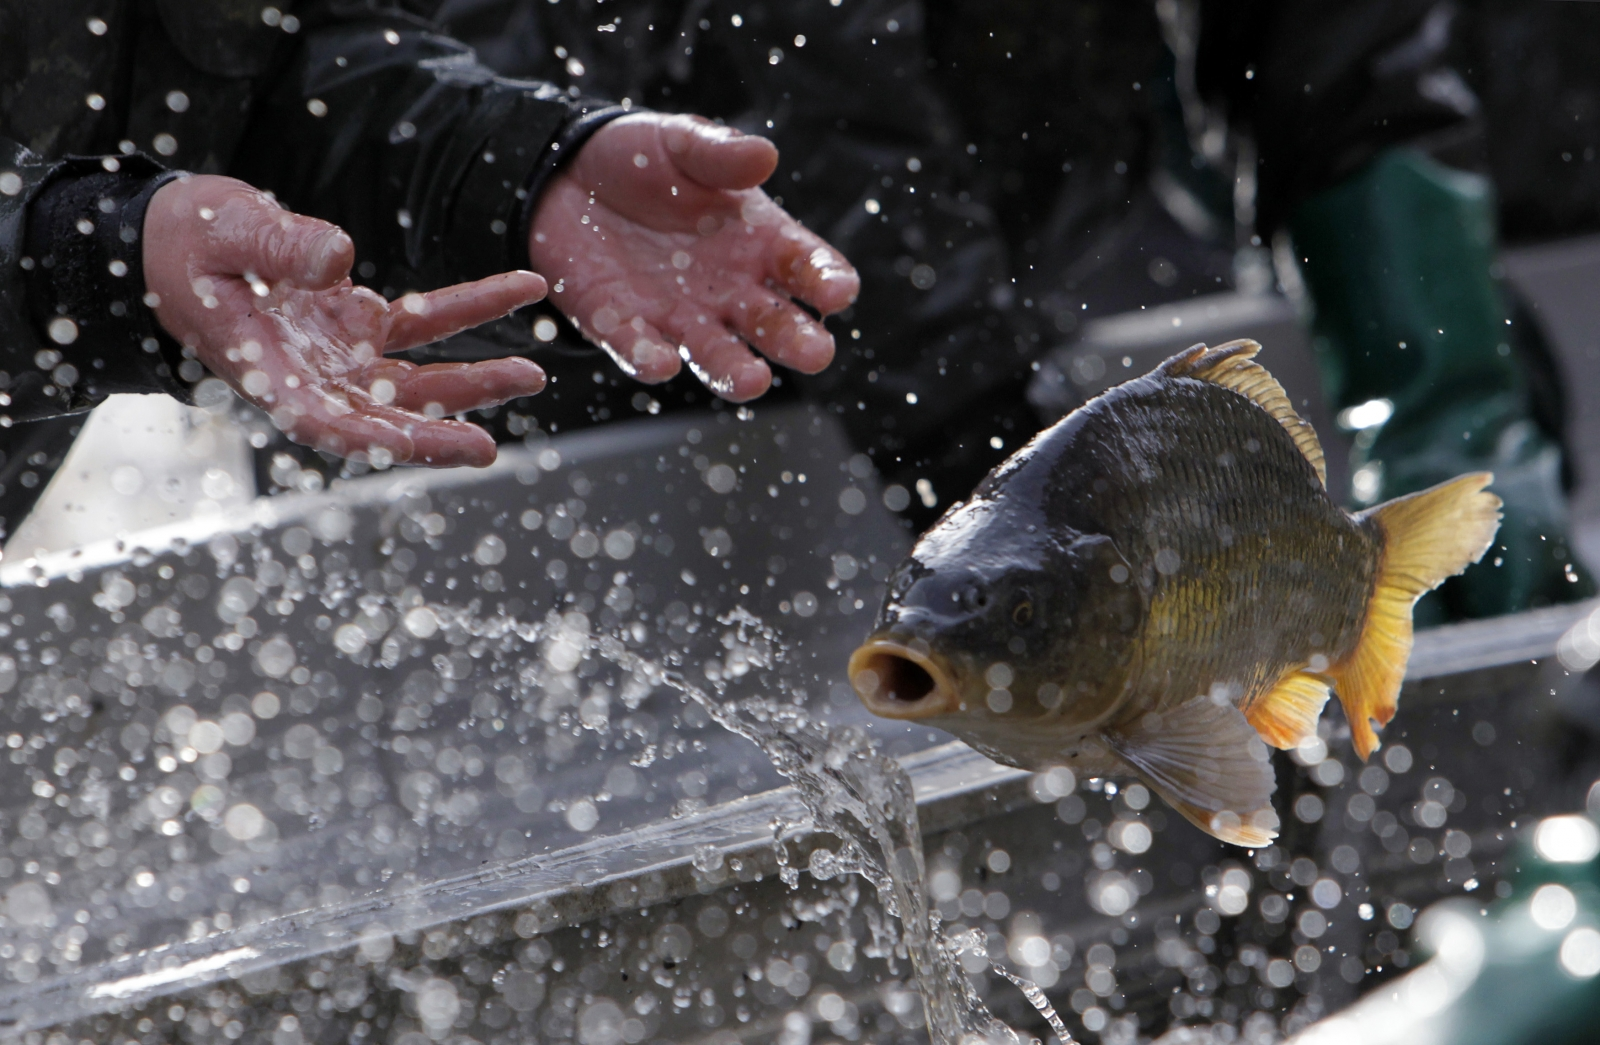 Christmas 2014: Fish swims in bathtub before for days being eaten in Slovakia